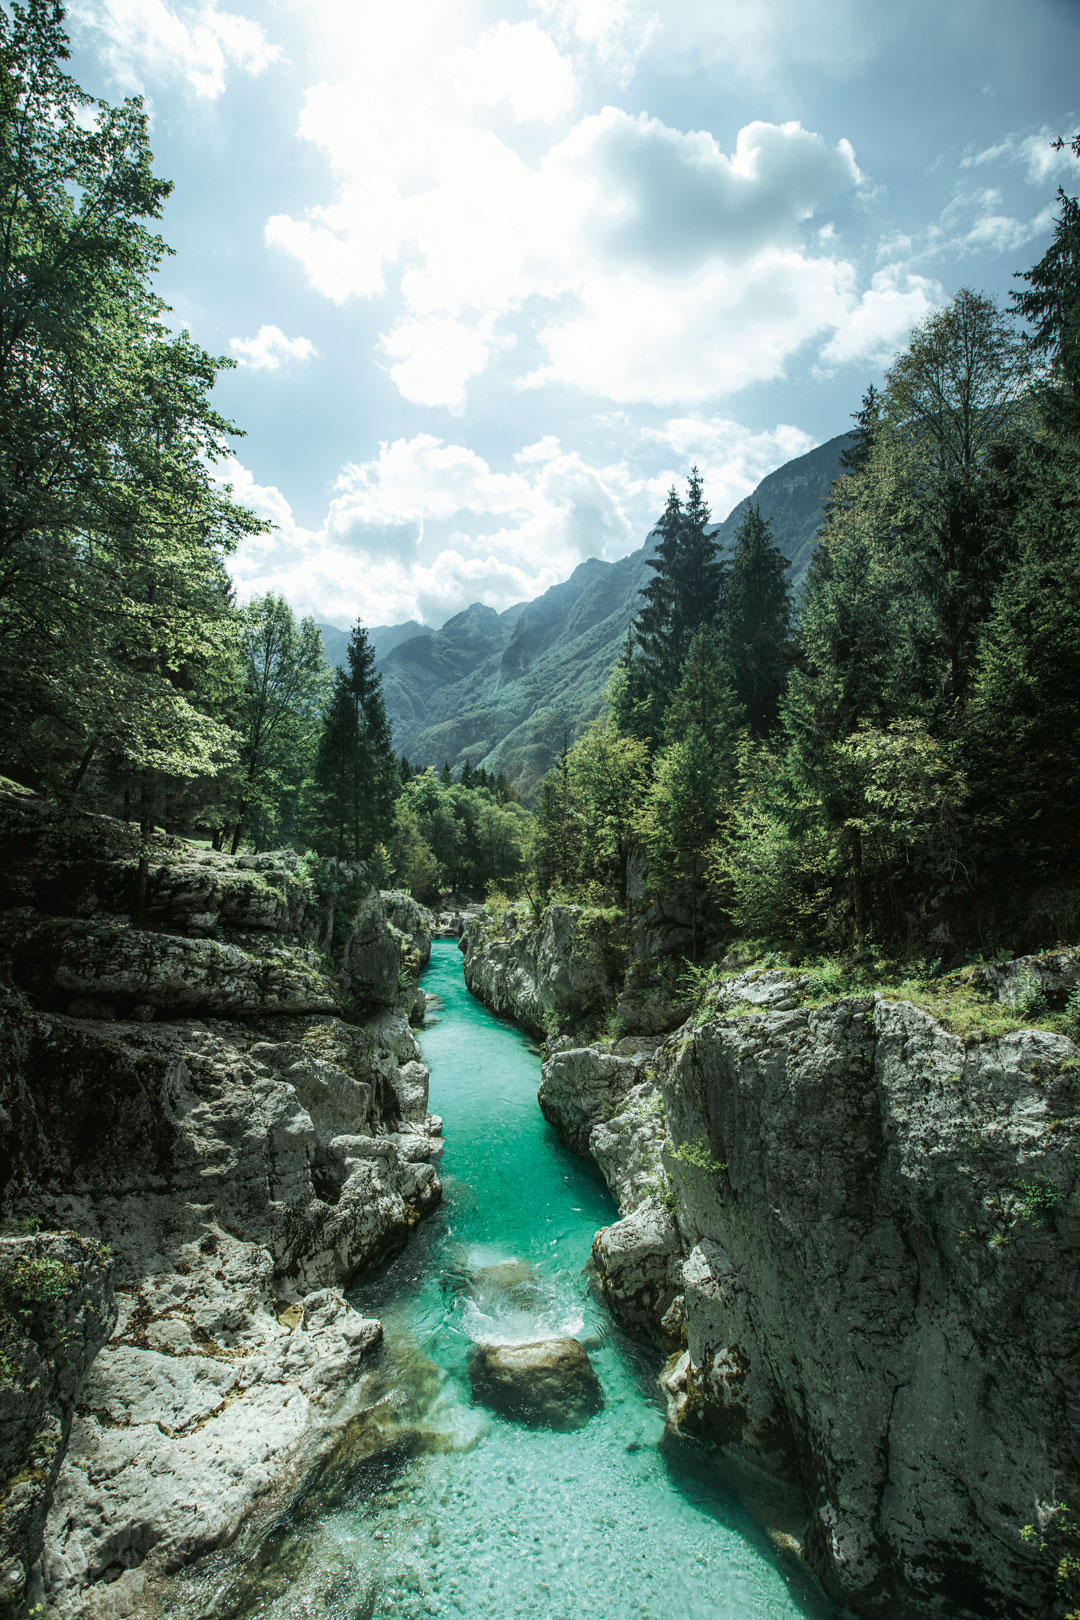 The Soca river